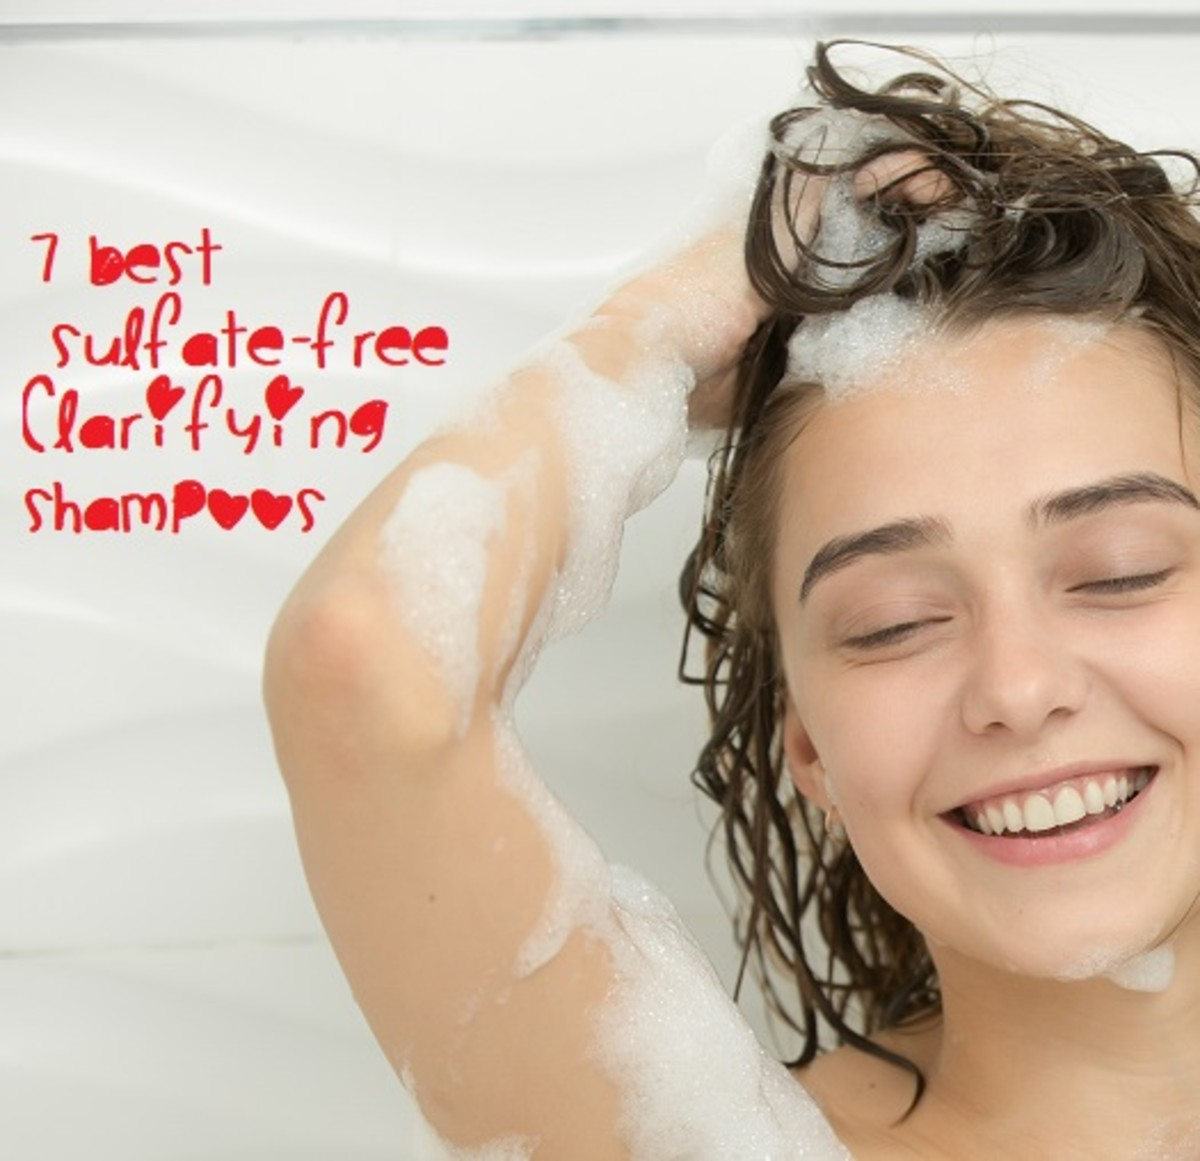 7 Best Sulfate Free, Clarifying Shampoos